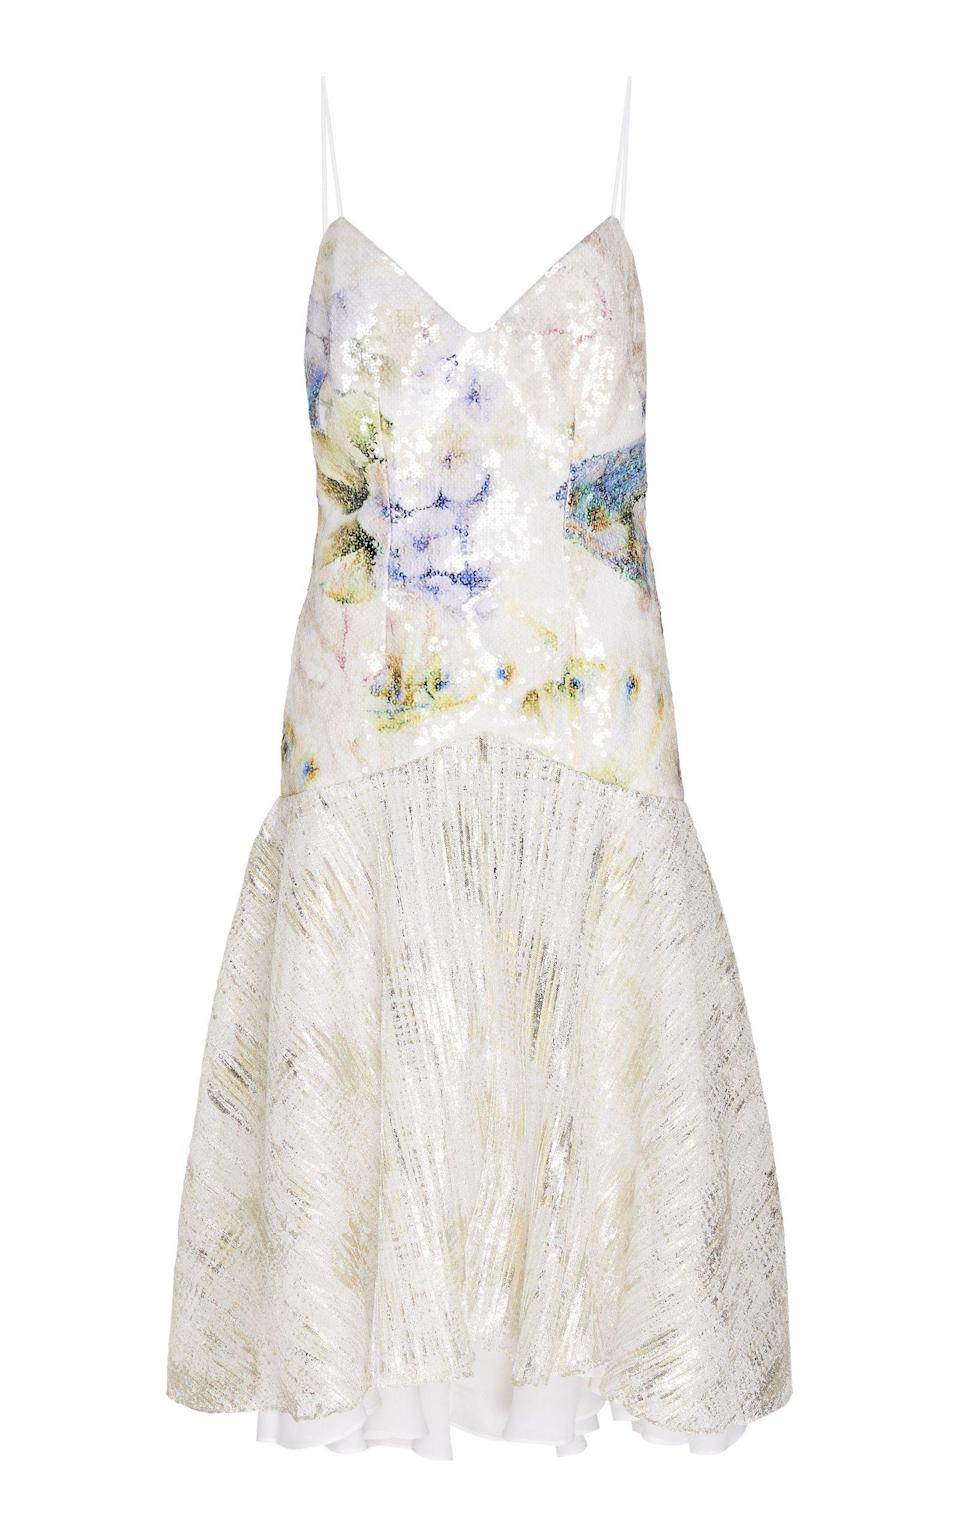 """<p><strong>Rodarte</strong></p><p>modaoperandi.com</p><p><strong>$2645.00</strong></p><p><a href=""""https://go.redirectingat.com?id=74968X1596630&url=https%3A%2F%2Fwww.modaoperandi.com%2Frodarte-ss20%2Ffloral-print-sequined-lame-slip-dress&sref=https%3A%2F%2Fwww.harpersbazaar.com%2Fwedding%2Fbridal-fashion%2Fg7503%2Foff-the-rack-wedding-dresses%2F"""" rel=""""nofollow noopener"""" target=""""_blank"""" data-ylk=""""slk:SHOP NOW"""" class=""""link rapid-noclick-resp"""">SHOP NOW</a></p><p>Channel tropical vibes with lame instead of heavy sequins and a floral accent in place of romantic lace.</p>"""